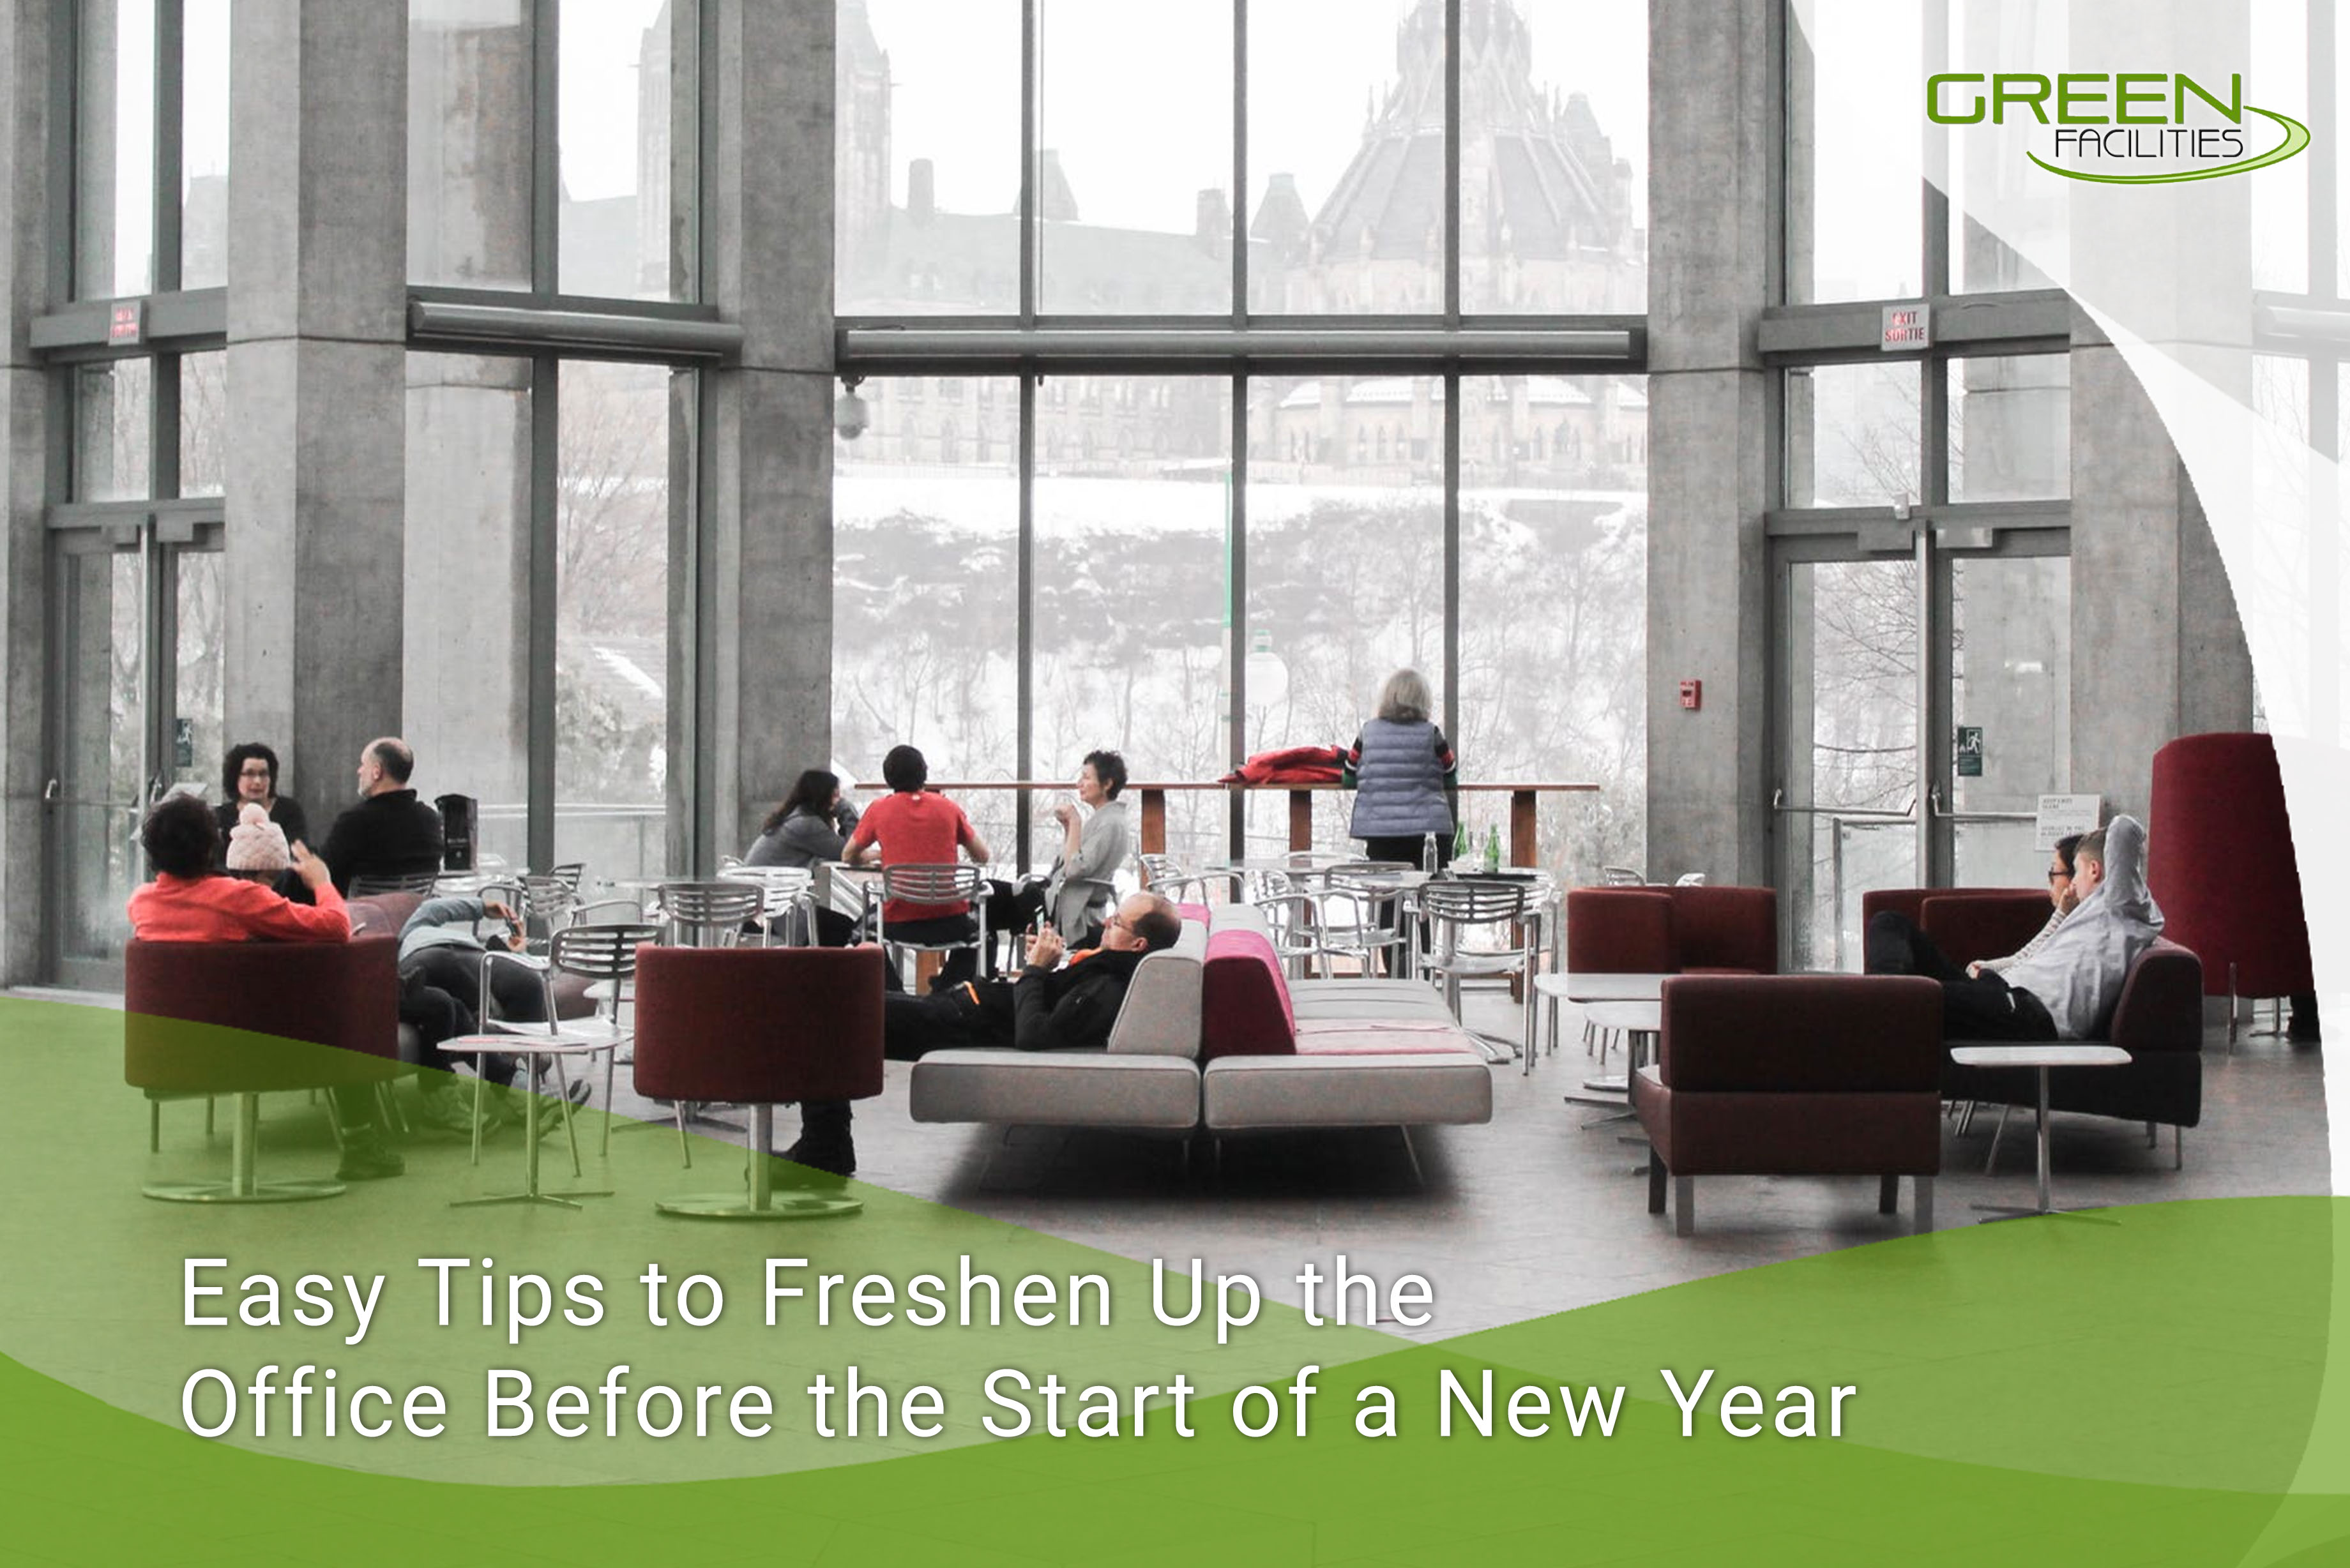 Easy Tips to Freshen Up the Office Before the Start of a New Year